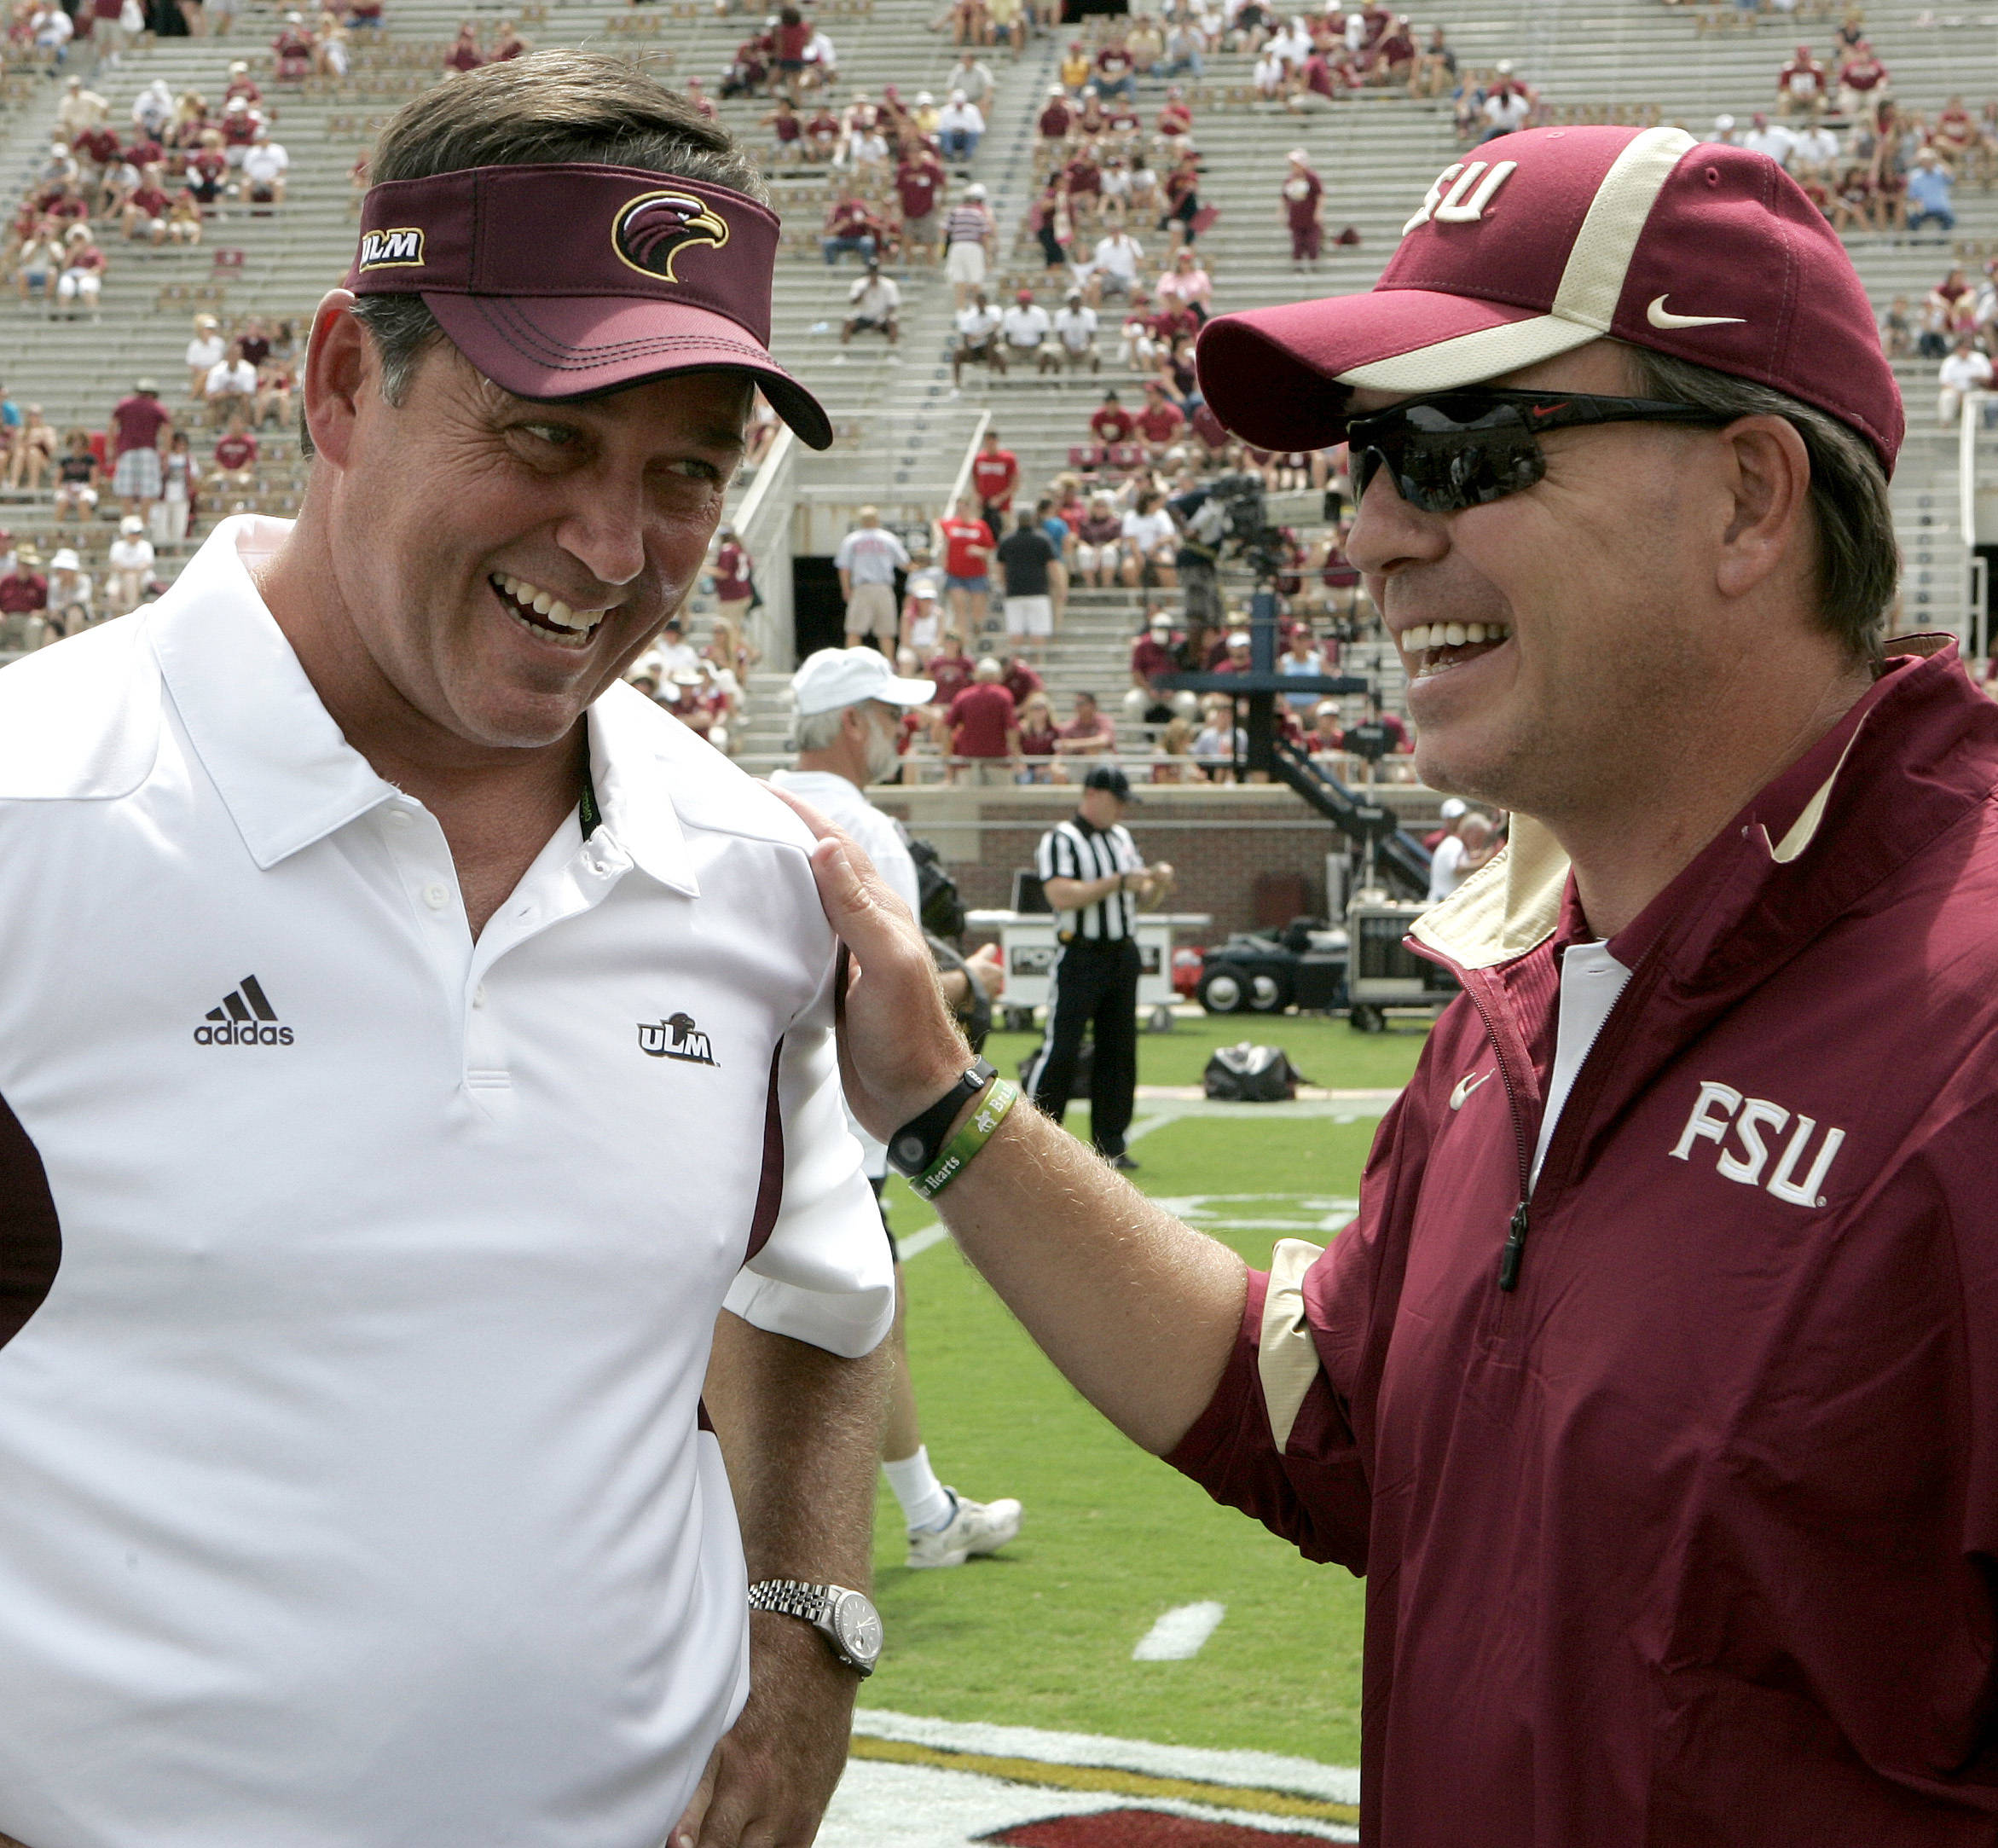 Florida State head coach Jimbo Fisher, right, chats with Louisiana-Monroe head coach Todd Berry before the start of their NCAA college football game on Saturday, Sept. 3, 2011 in Tallahassee, Fla. (AP Photo/Steve Cannon) Louisiana